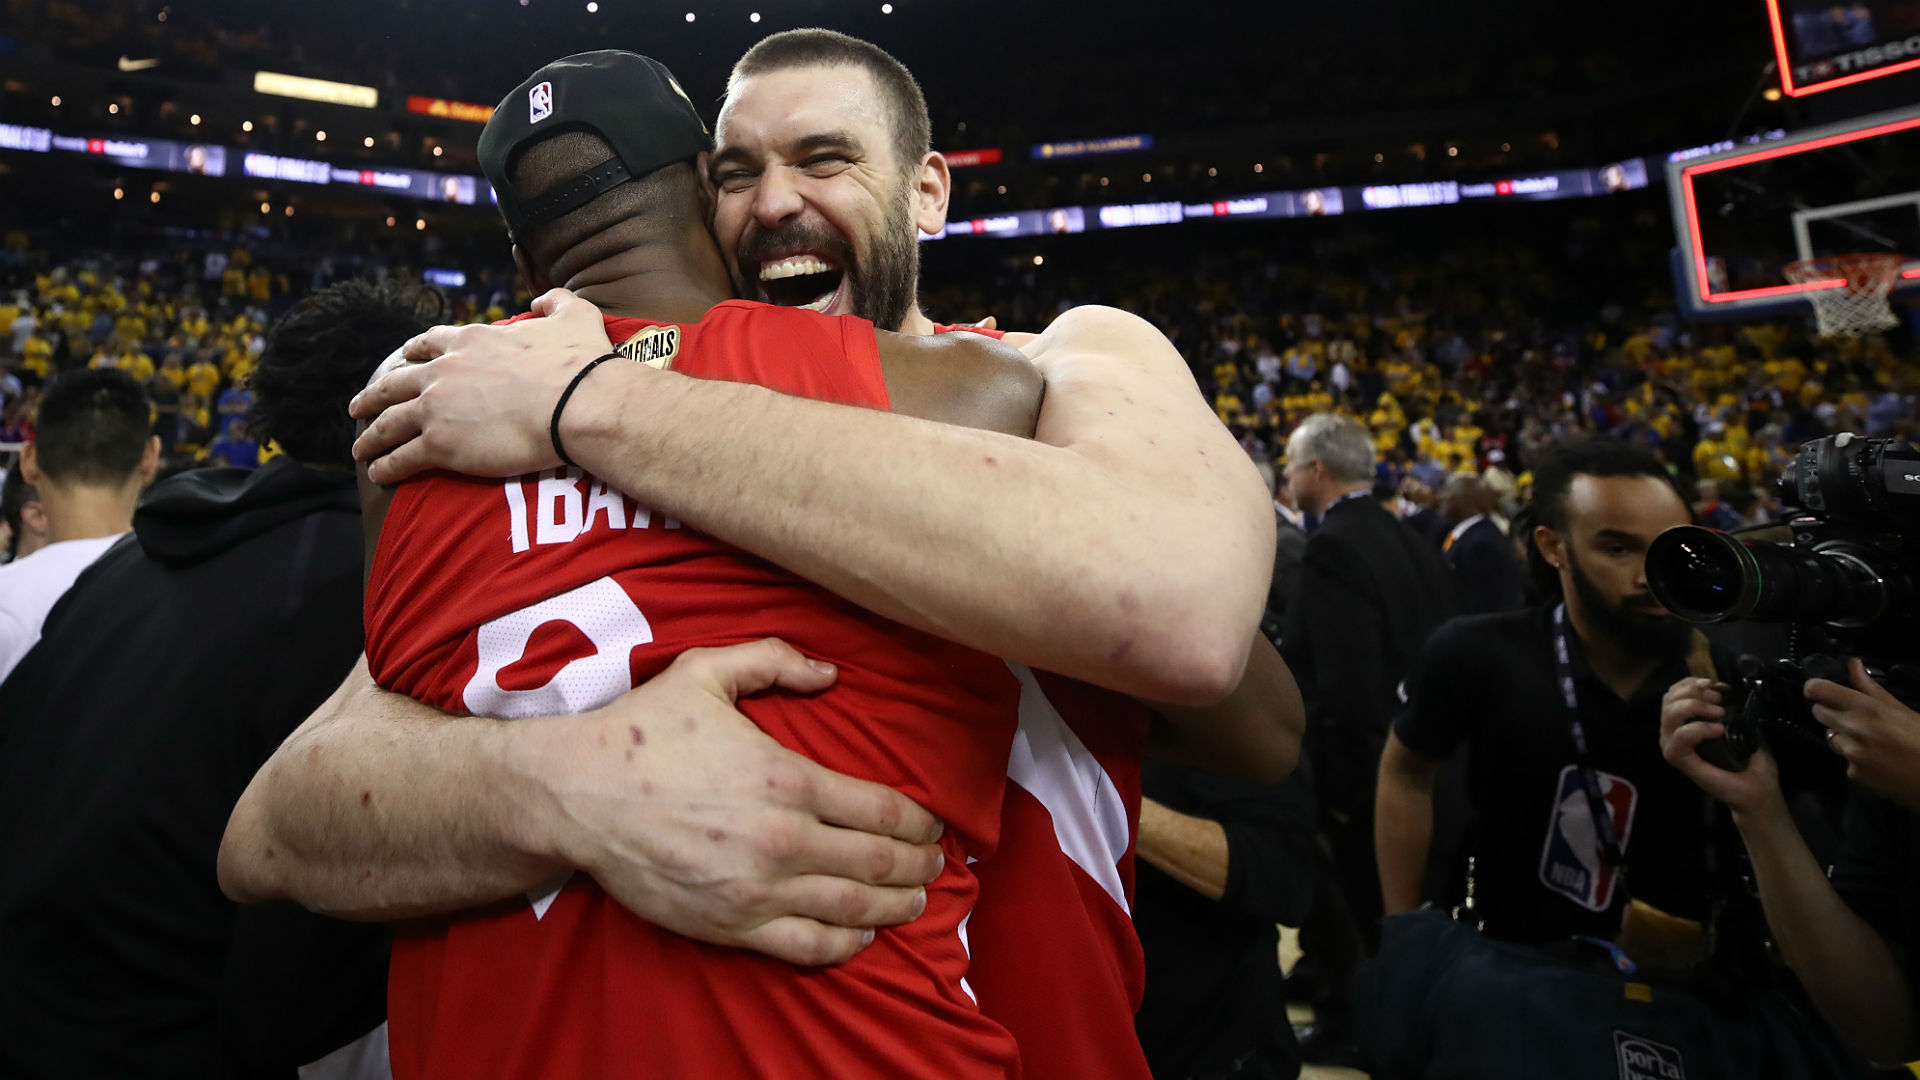 NBA players, basketball world react to Raptors winning first title in franchise history